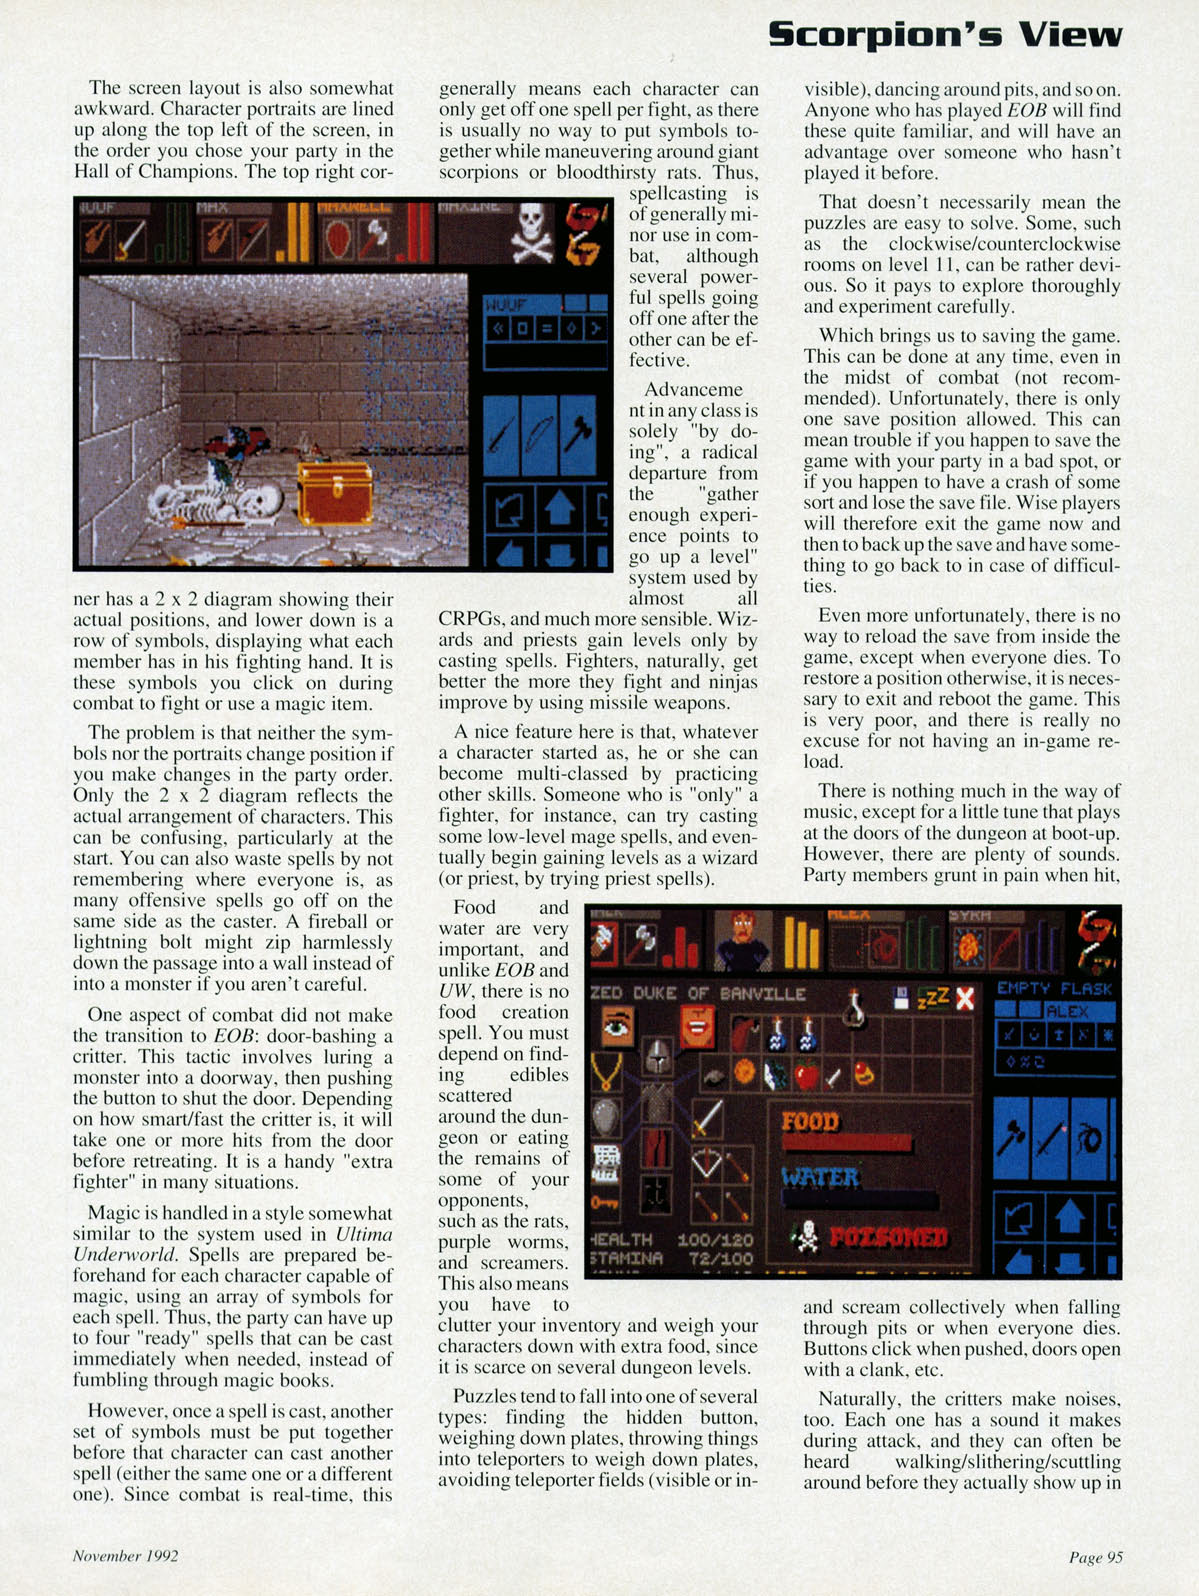 Dungeon Master for PC Review published in American magazine 'Computer Gaming World', Issue #100 November 1992, Page 95